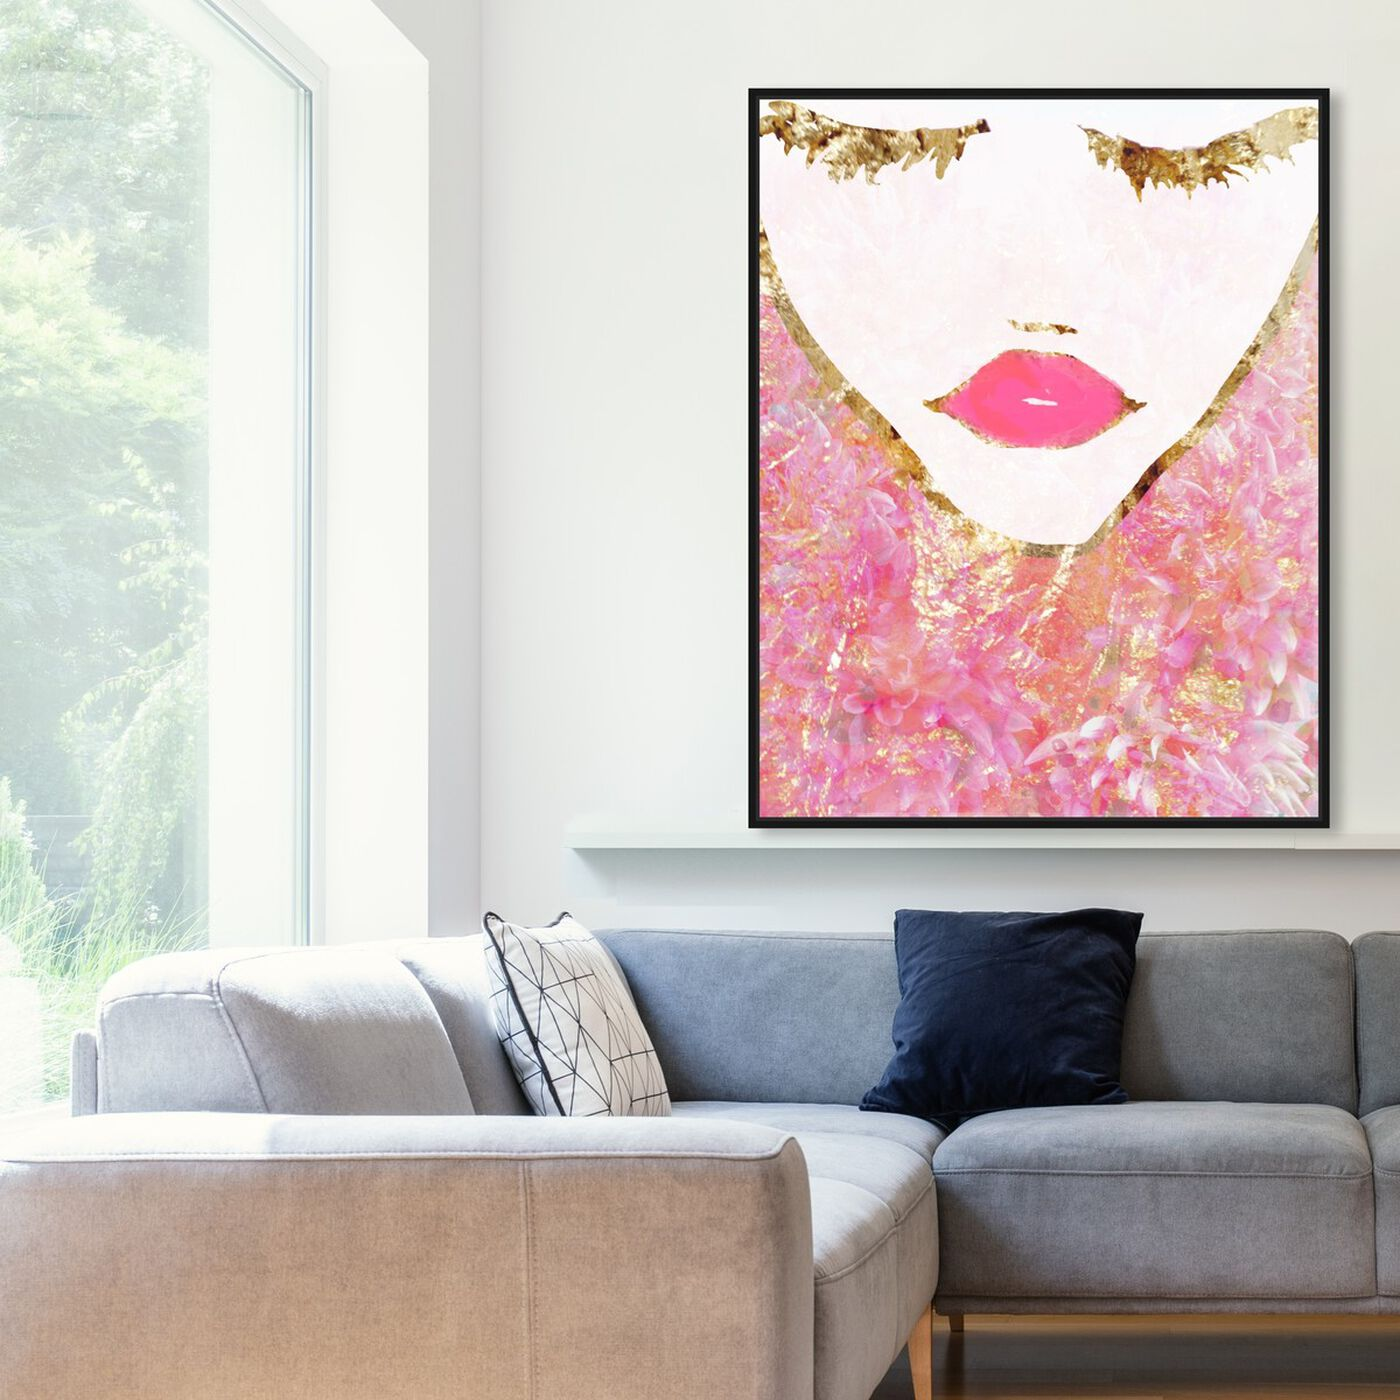 Hanging view of Goldbloom Coveted featuring fashion and glam and portraits art.